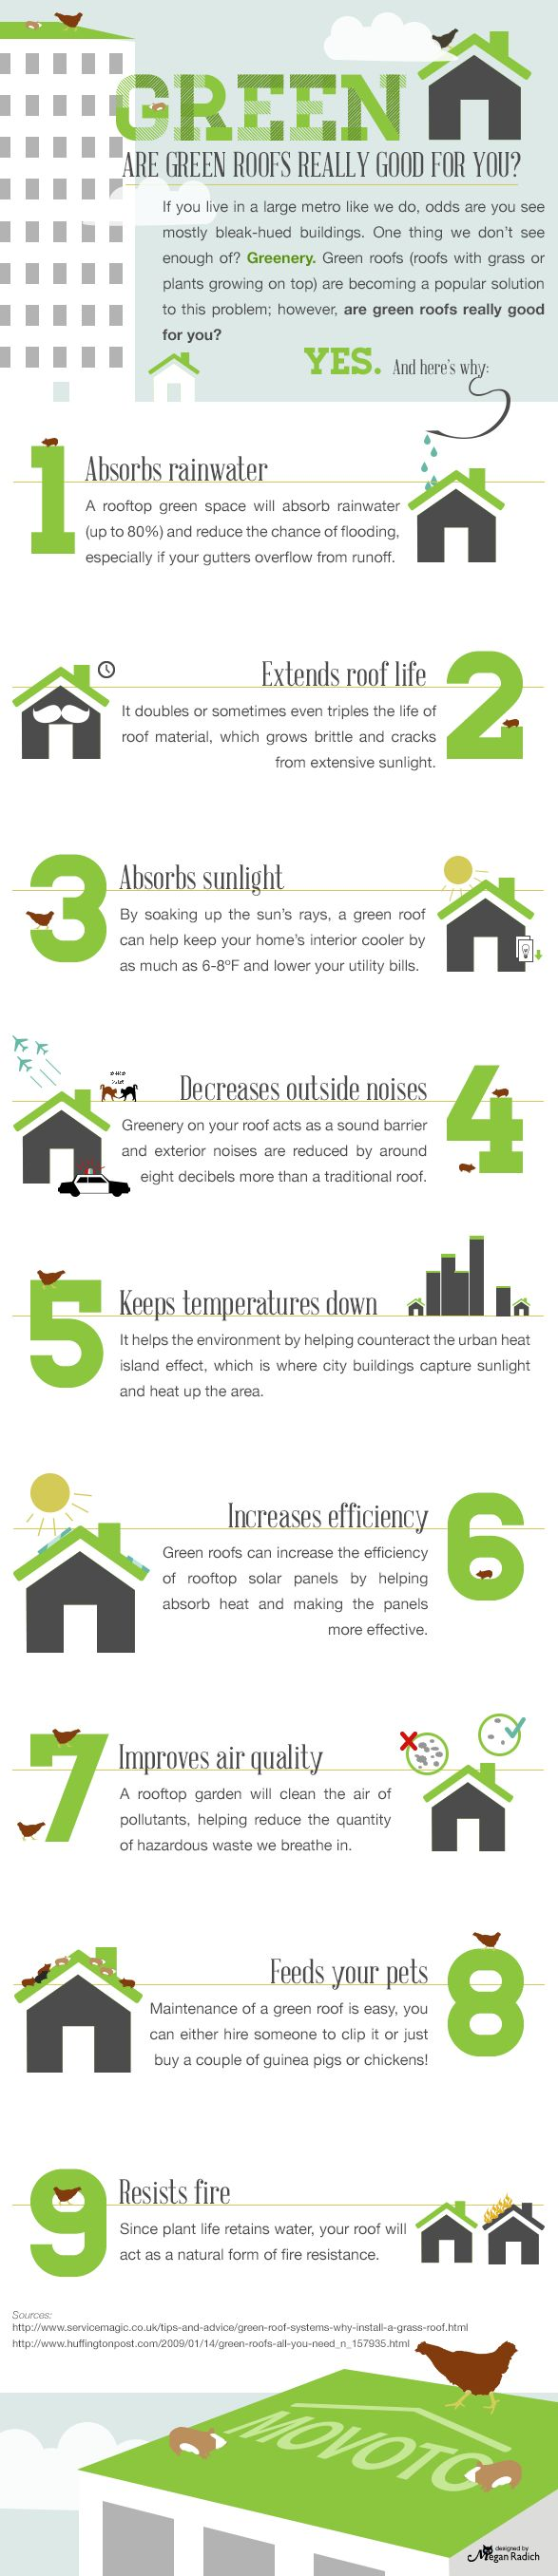 Are green roofs really good for you   Infographic   InfographicsRooftop  GardensGreen. 124 best images about Roof Garden on Pinterest   Green roofs